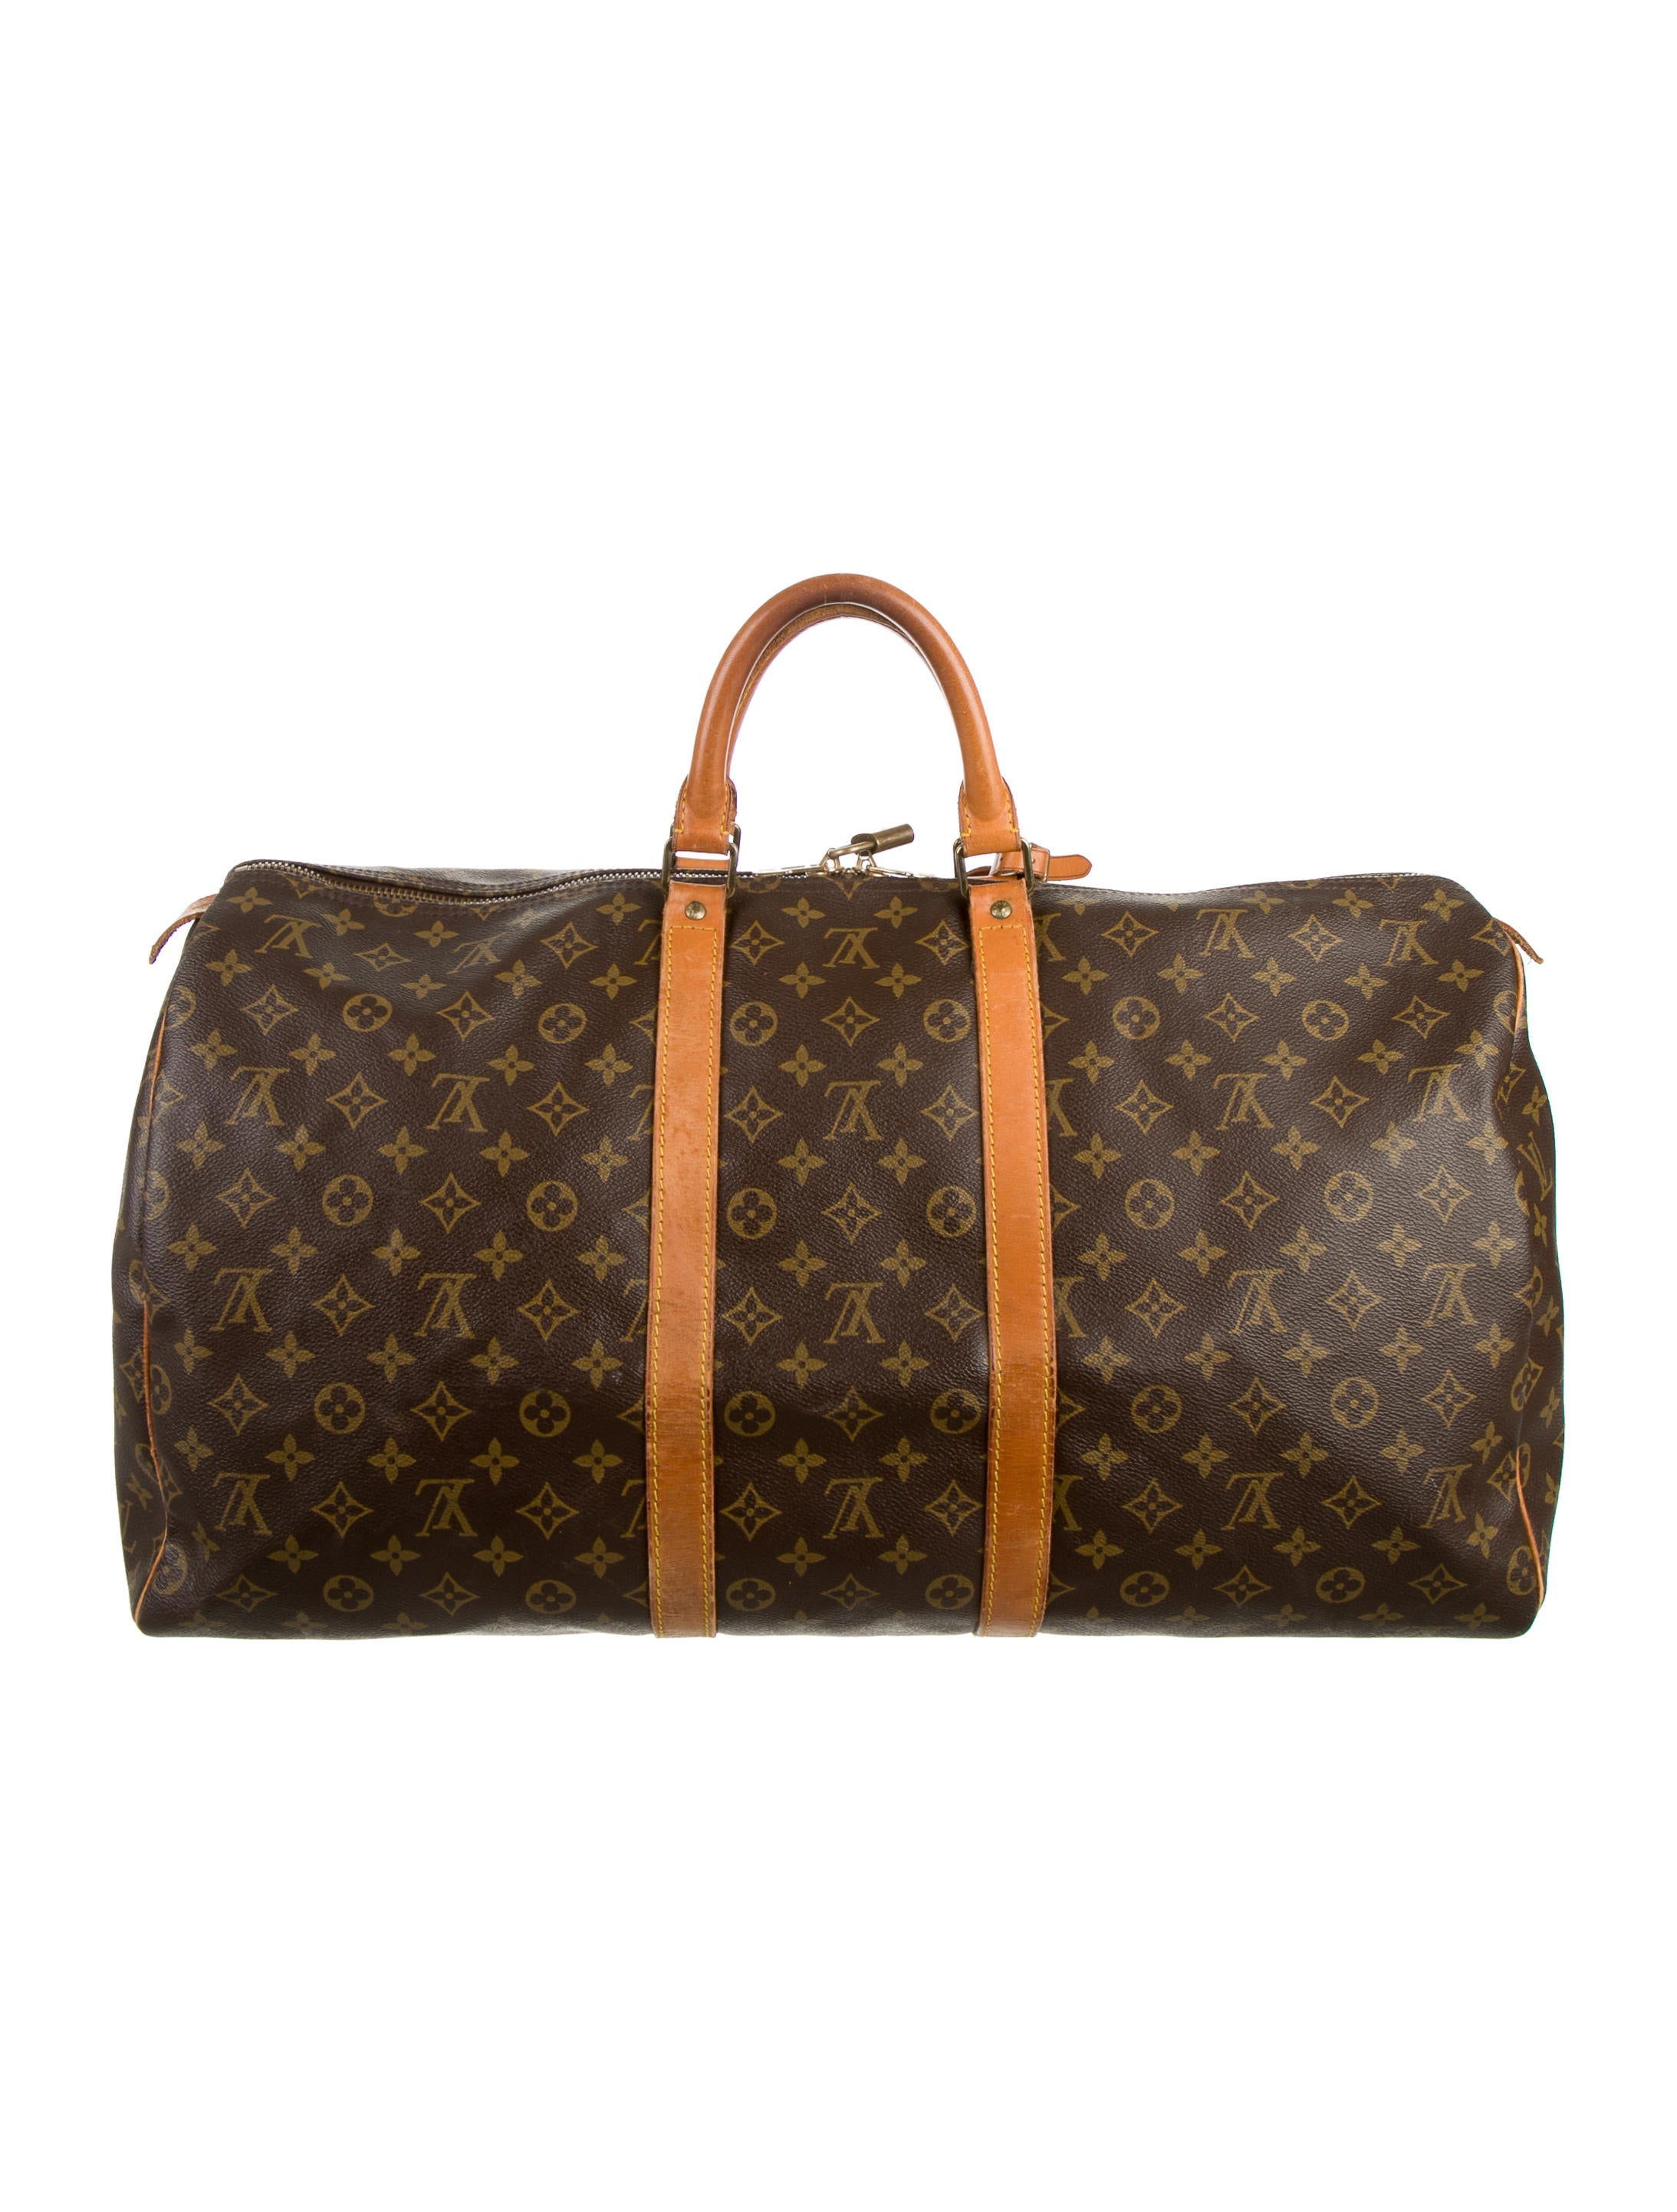 louis vuitton monogram keepall 55 handbags lou86172. Black Bedroom Furniture Sets. Home Design Ideas